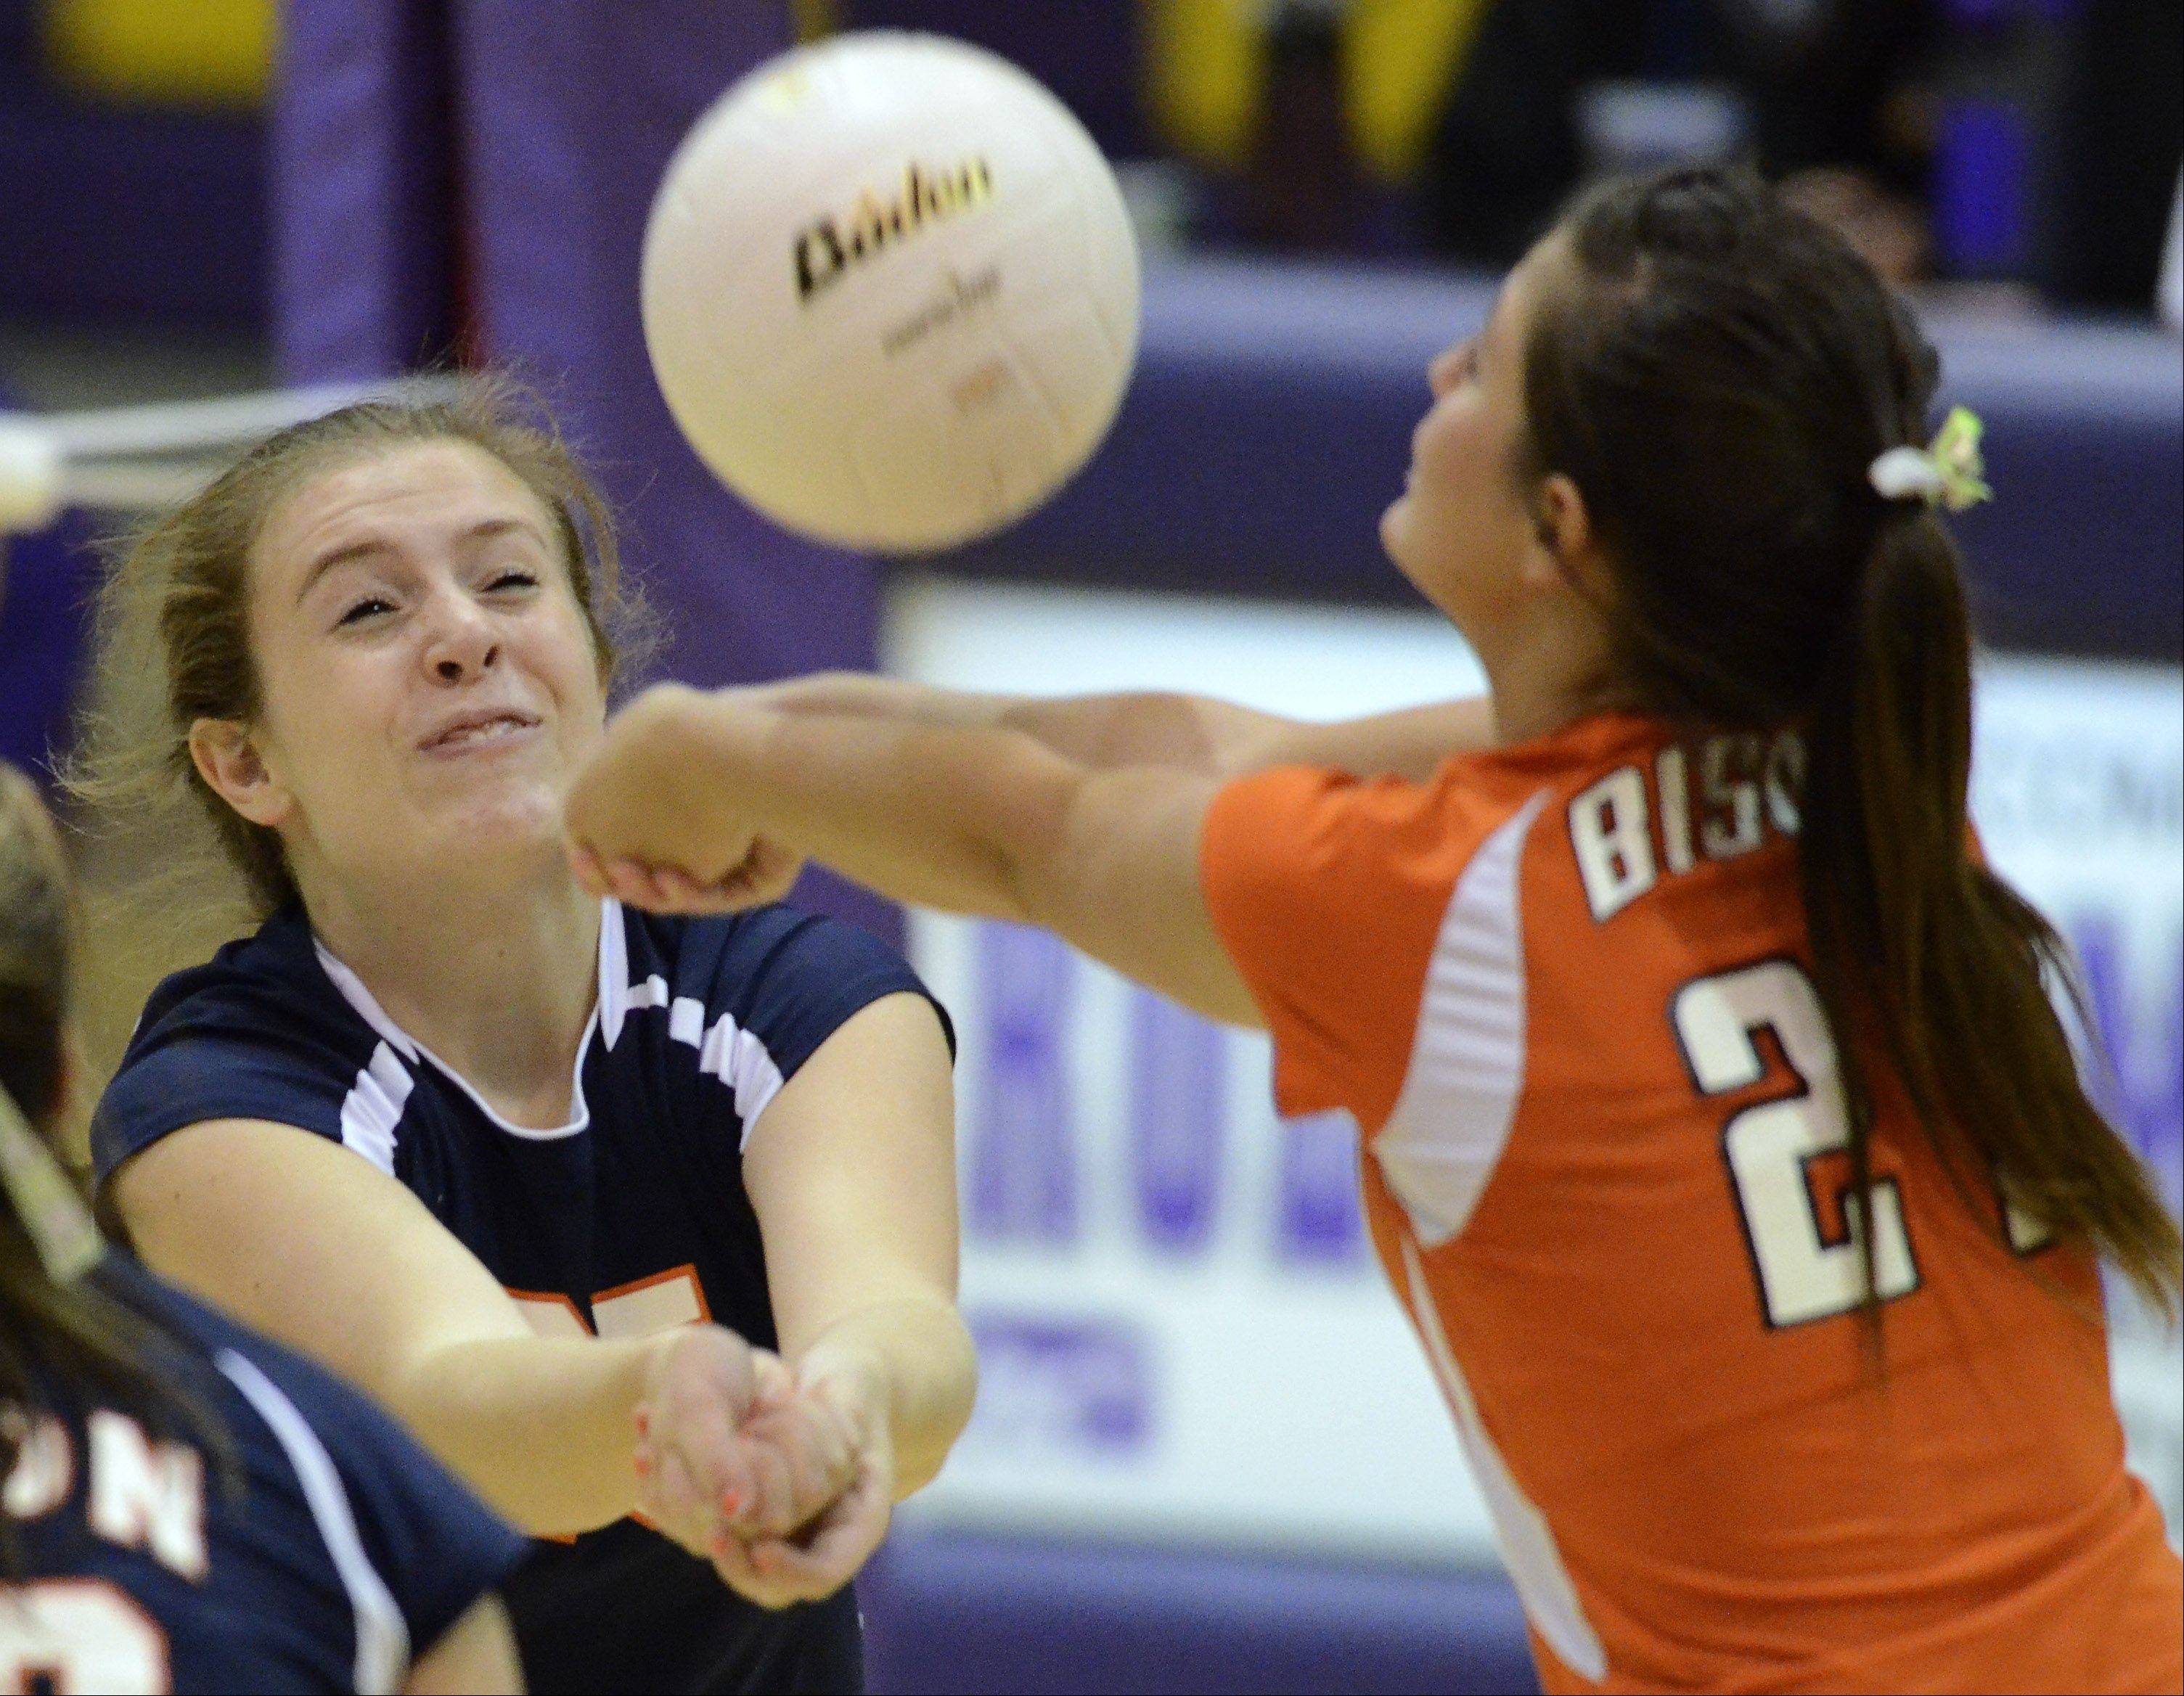 Buffalo Grove's Alyssa Mills, left, and Lea Masciopinto converge running for a dig during Thursday's game against Rolling Meadows.